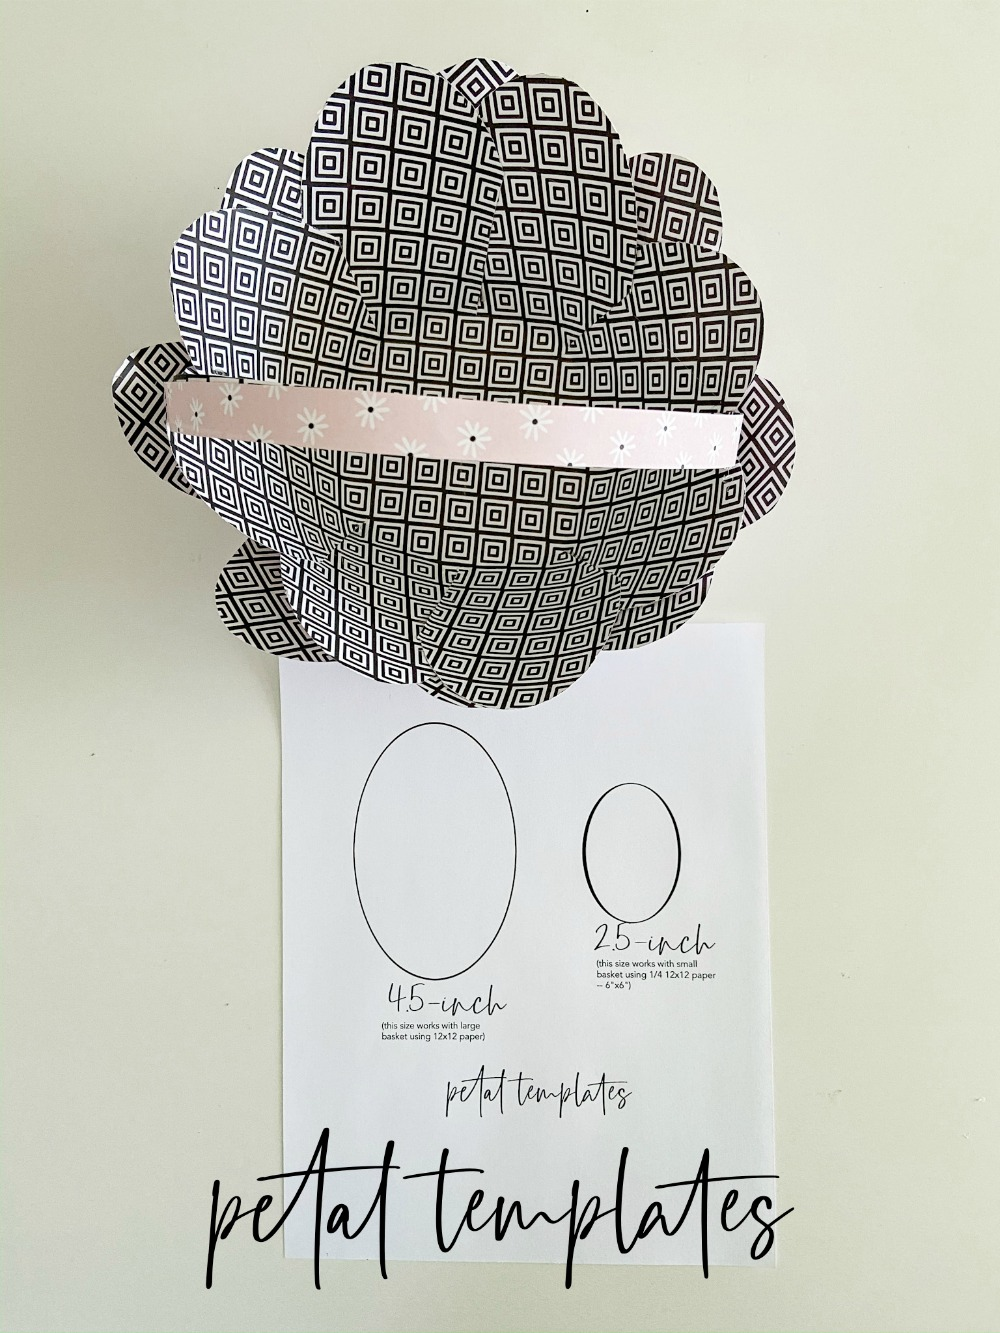 Paper Flower Basket Petal Templates. Just print them off and trace around the template onto your scrapbook paper.